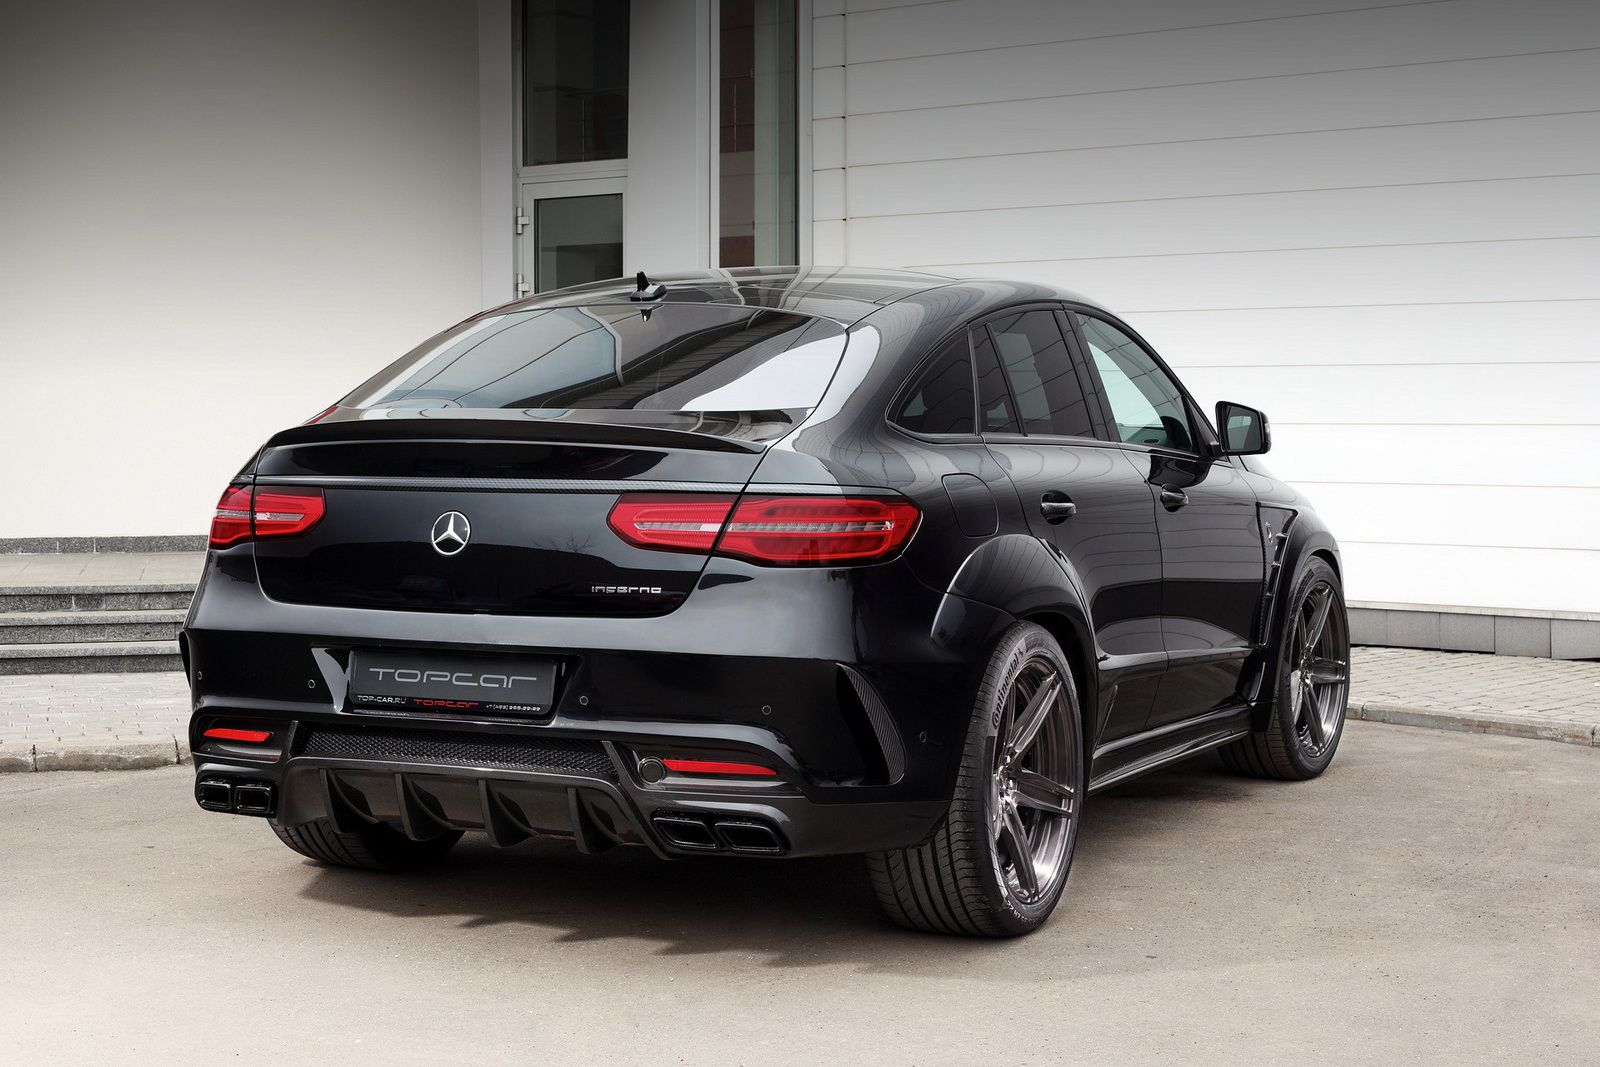 Russian tuner topcar has unveiled a new upgrade package for New mercedes benz model